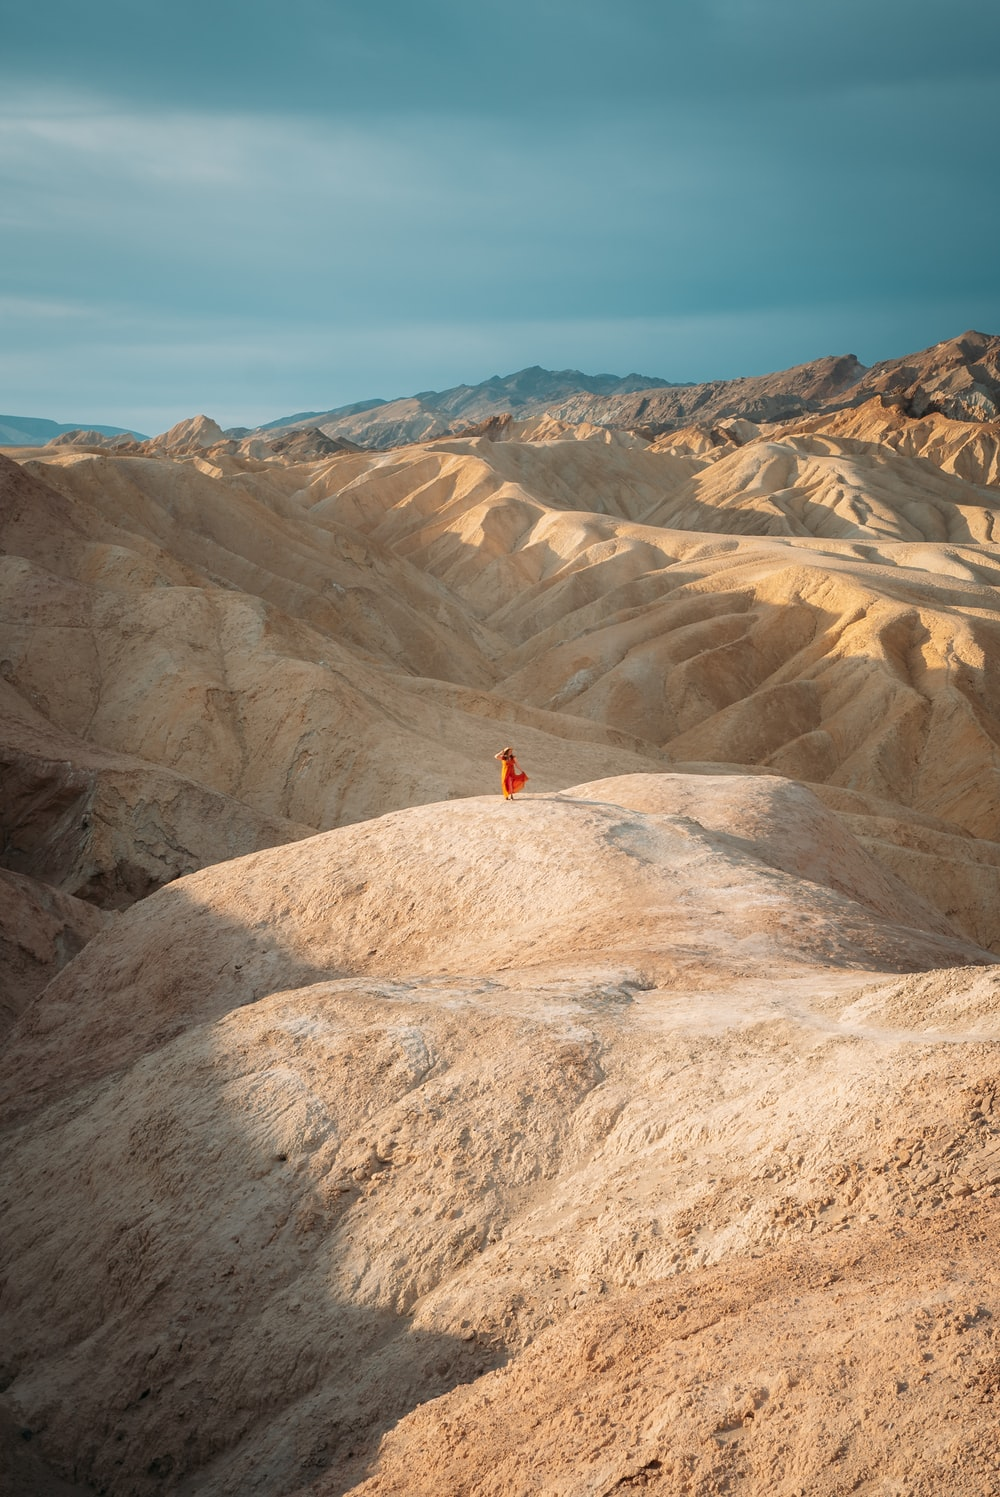 person in red shirt standing on brown rock formation during daytime